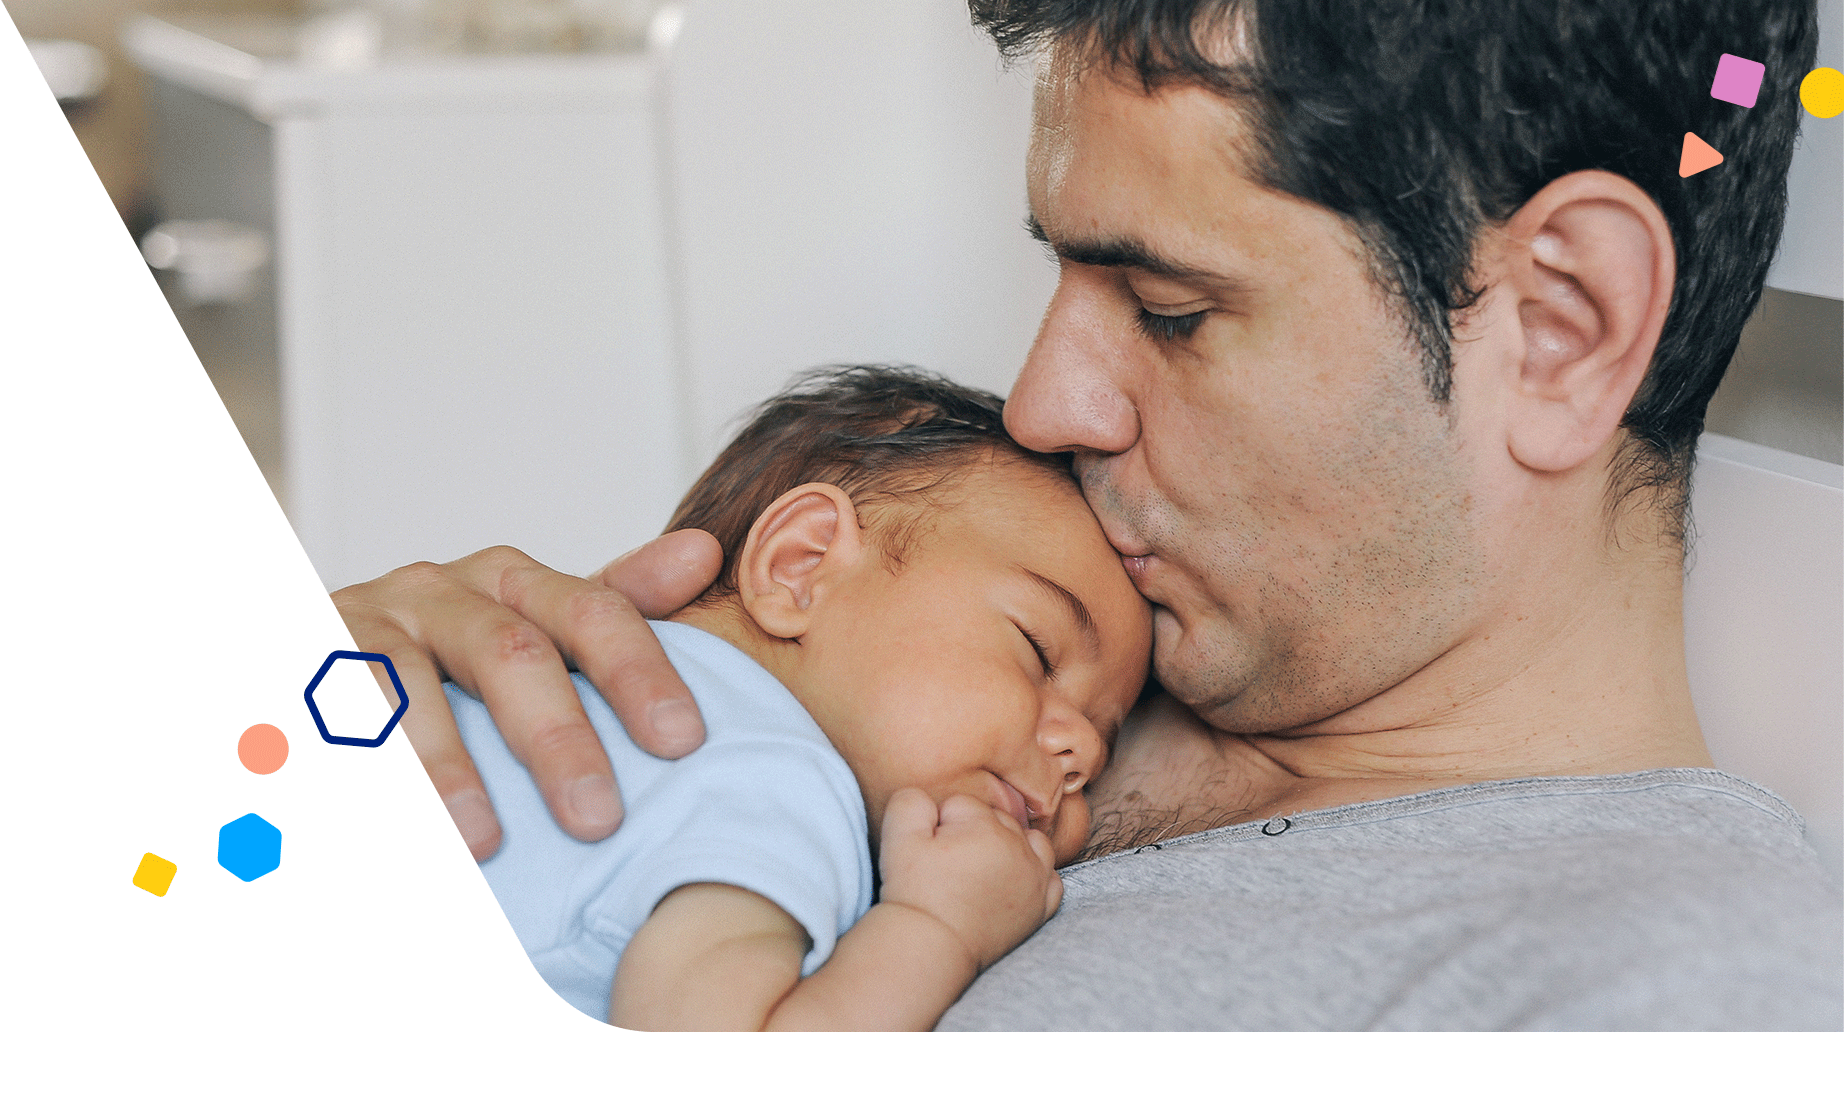 How Can I Help Easy My Baby's Symptoms